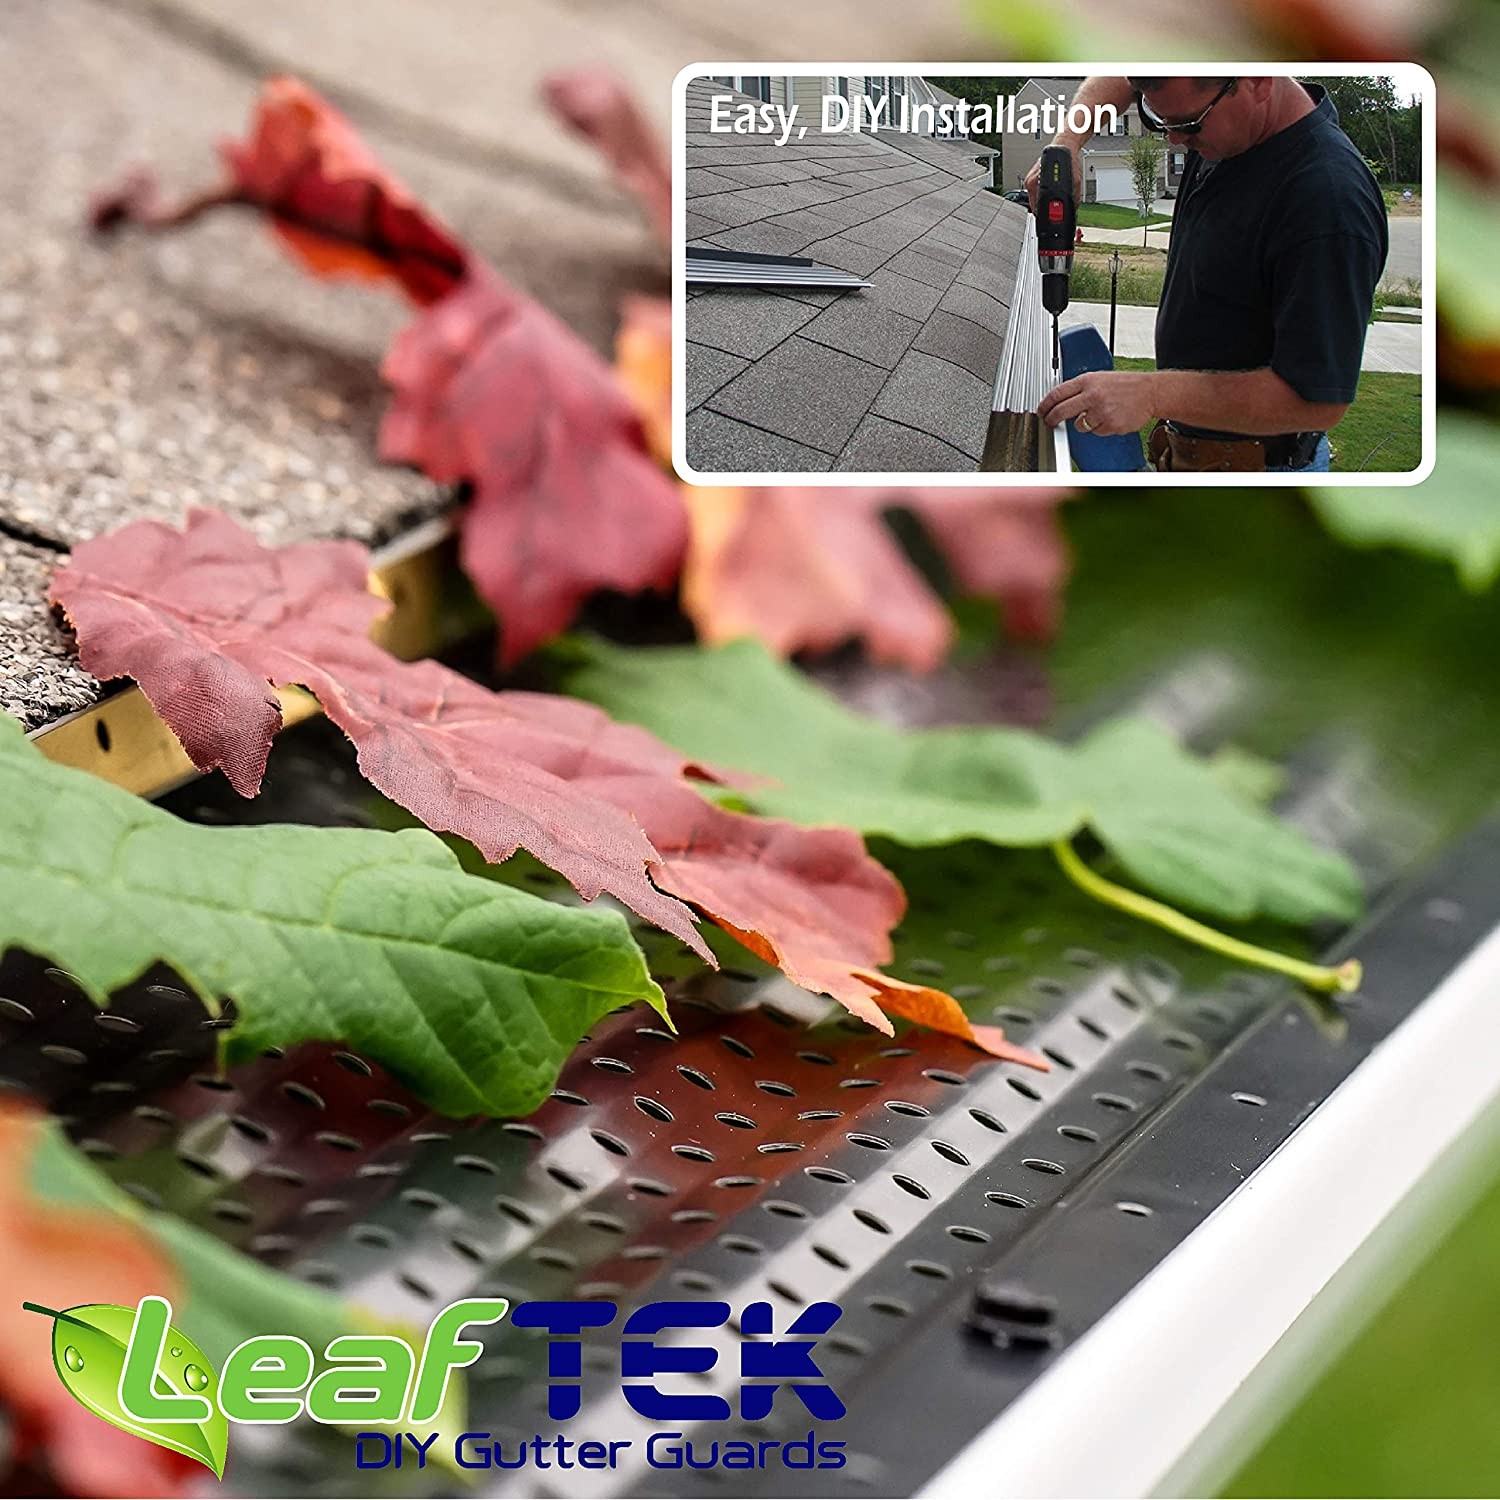 32//100//200 Available in 5 or 6 Inch LeafTek 5 x 100 Gutter Guard Leaf Protection White or Black DIY Premium Contractor Grade 35 Year Aluminum Covers